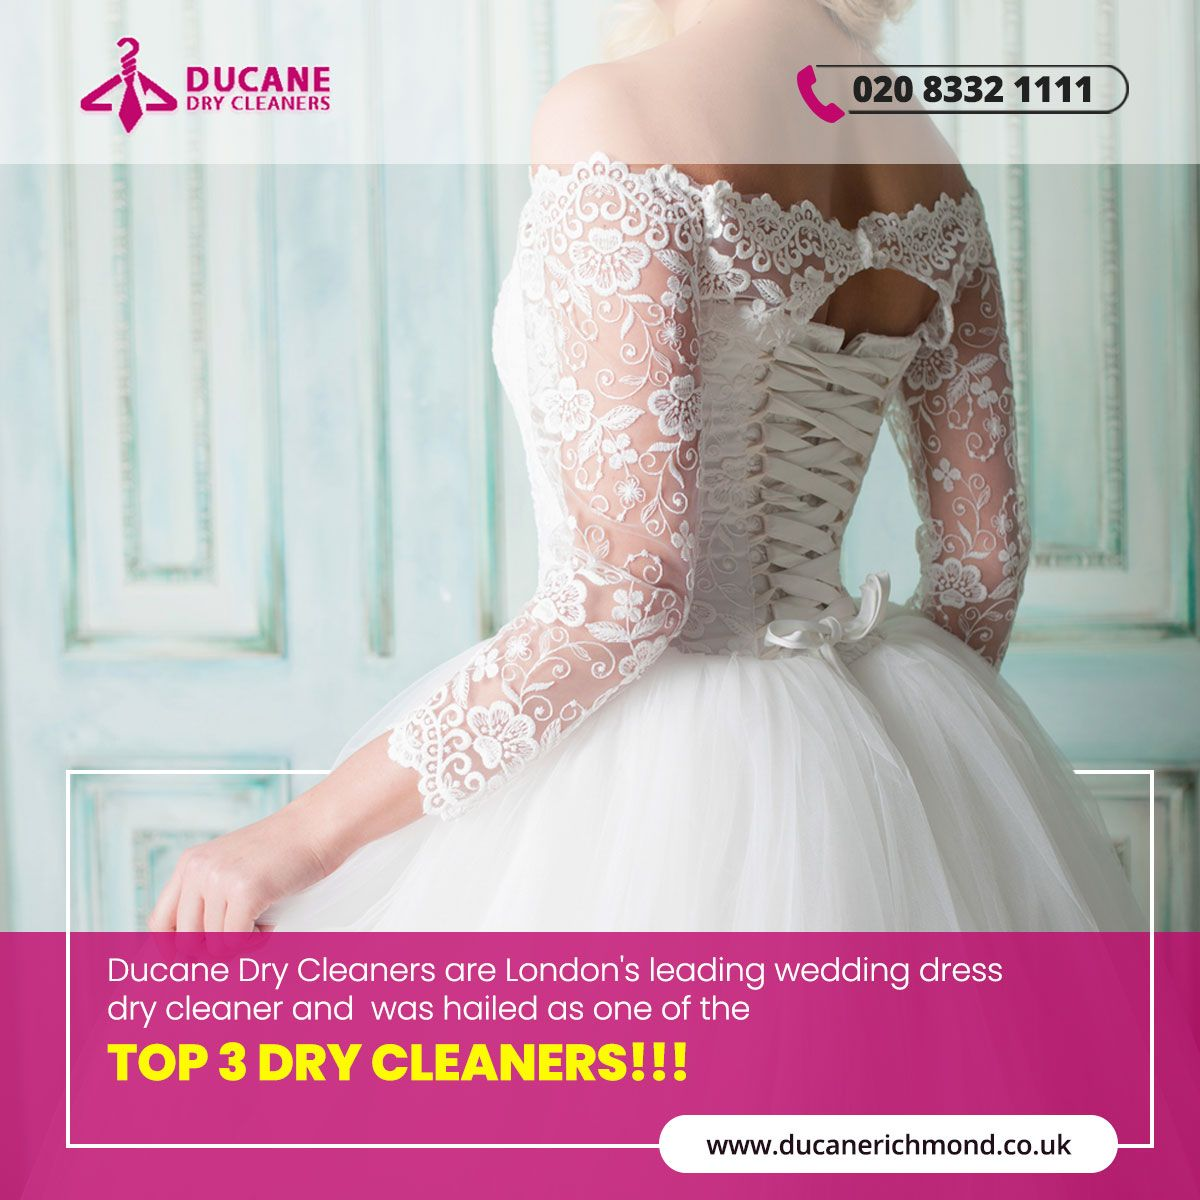 Ducane Dry Cleaners London Dry Cleaners Wedding Dresses Cleaners